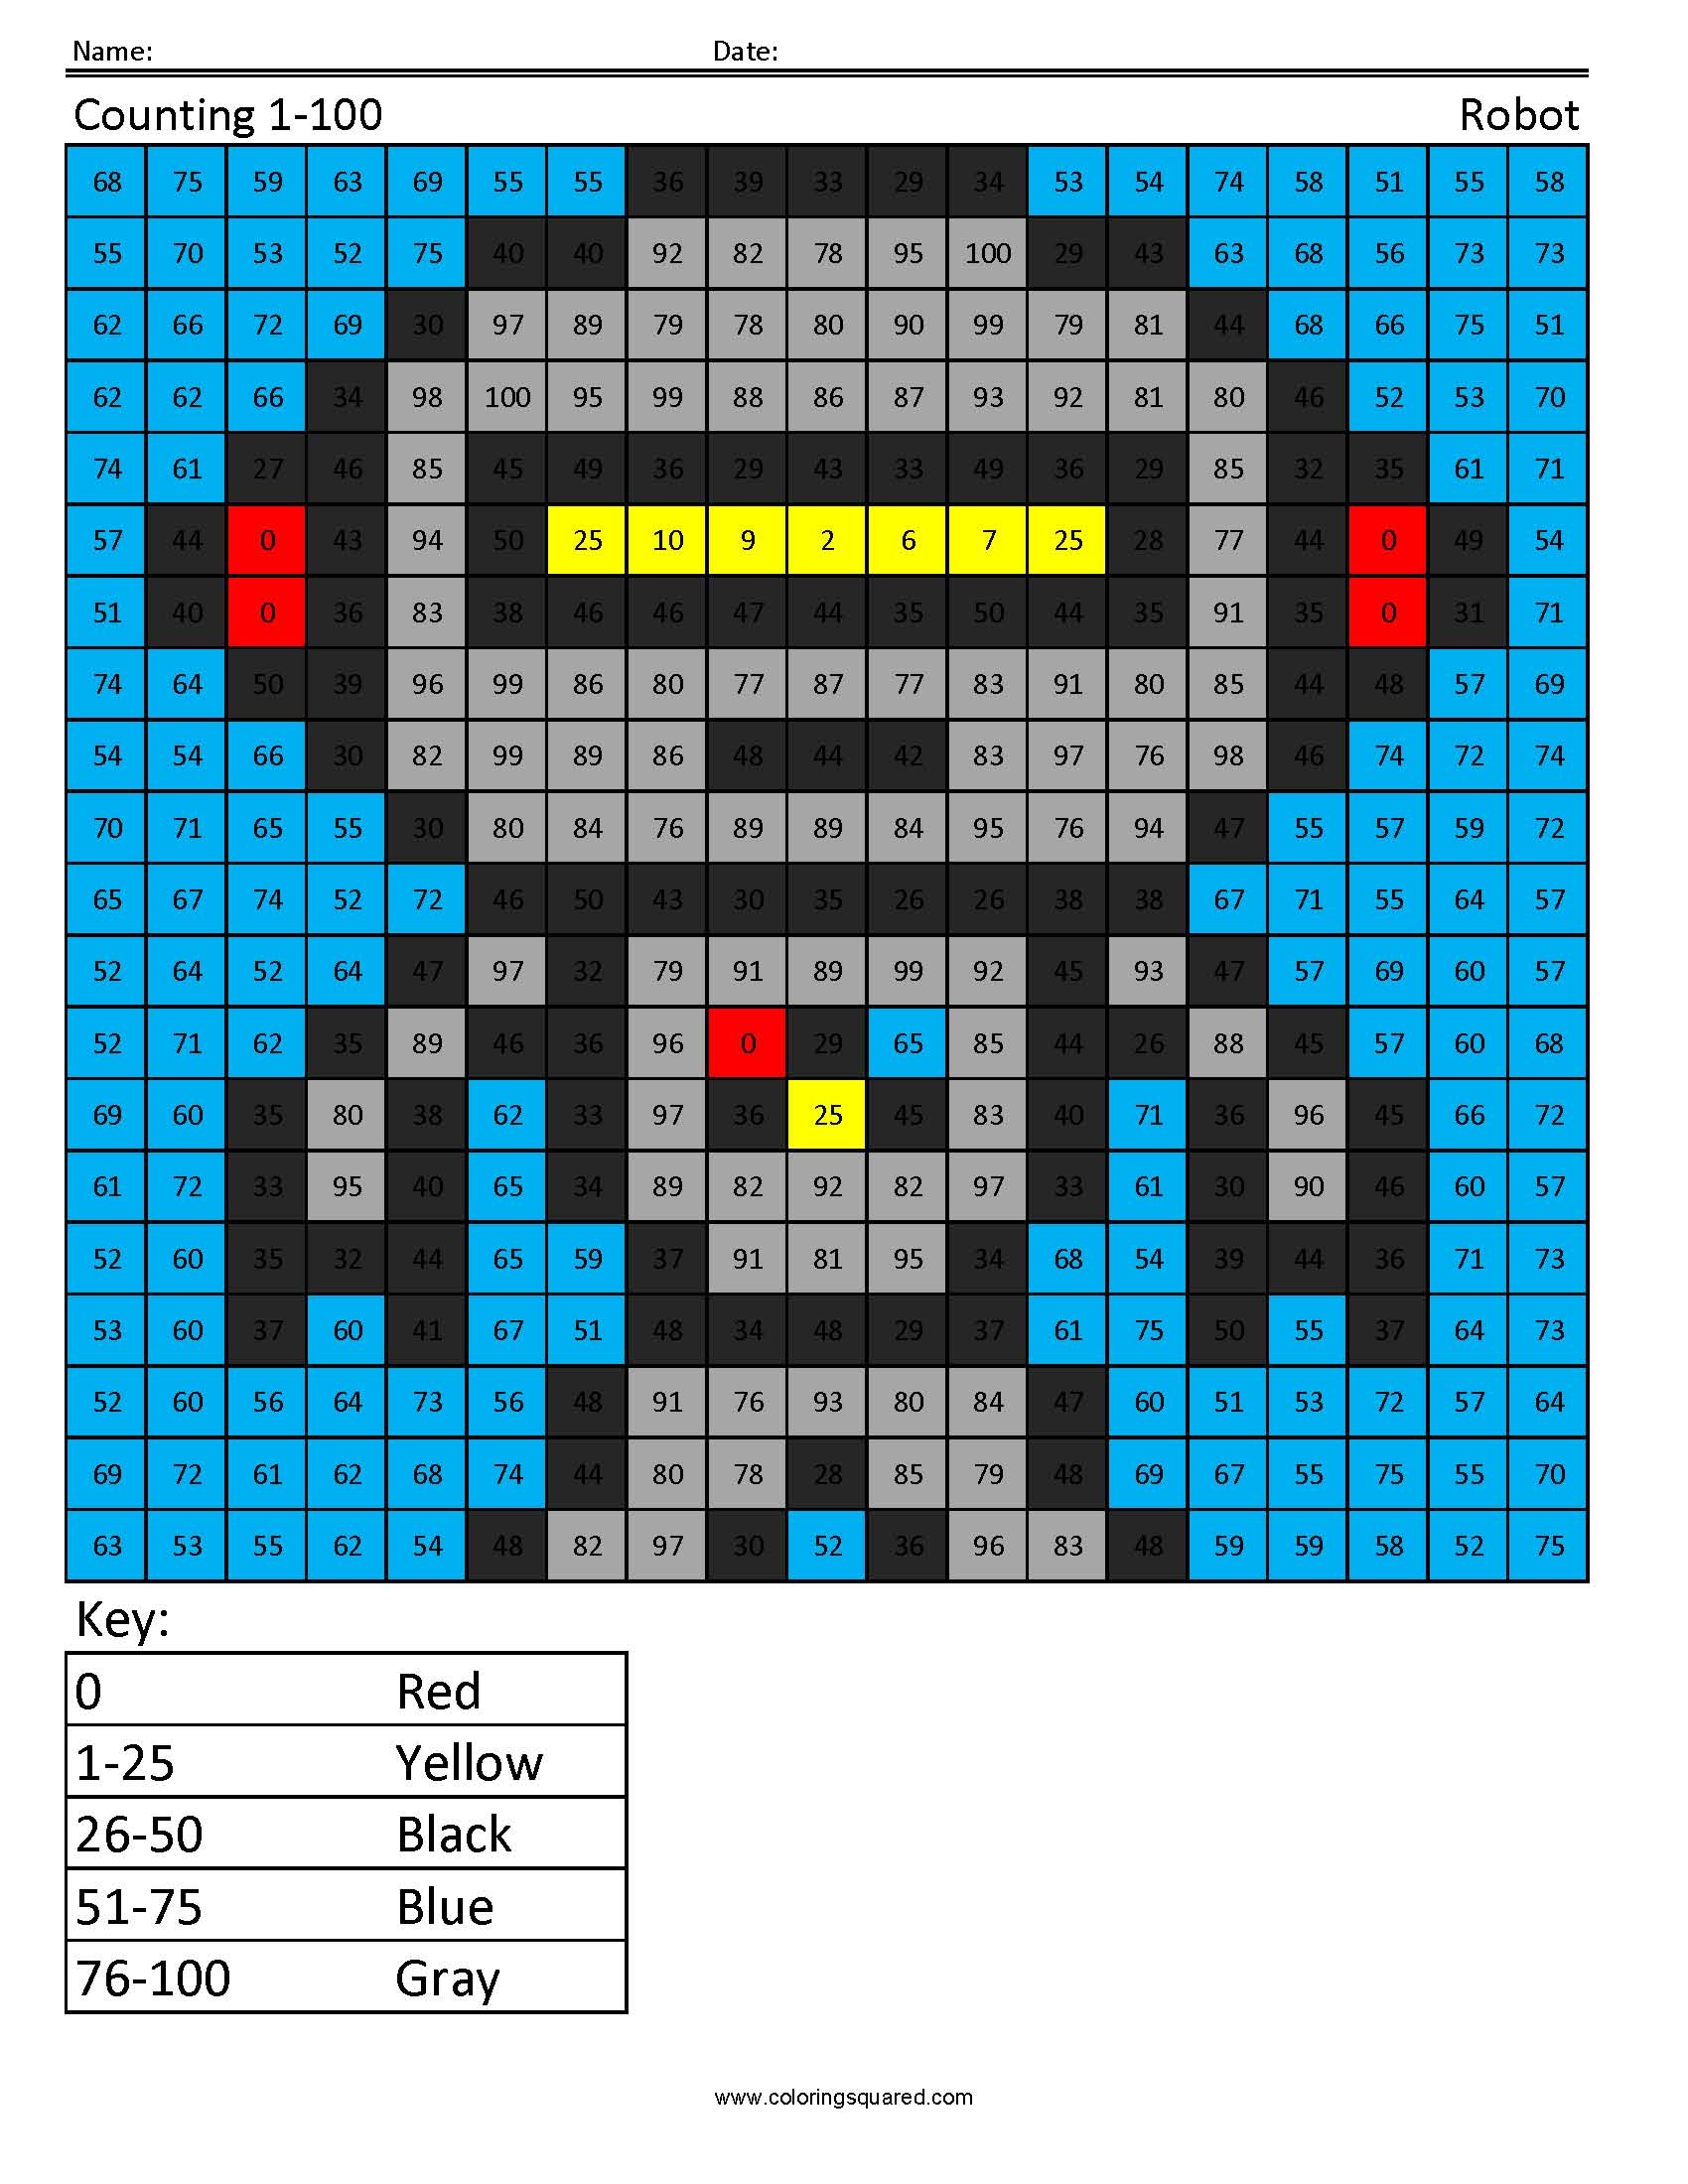 1G23 Counting Robot first grade math - Coloring Squared